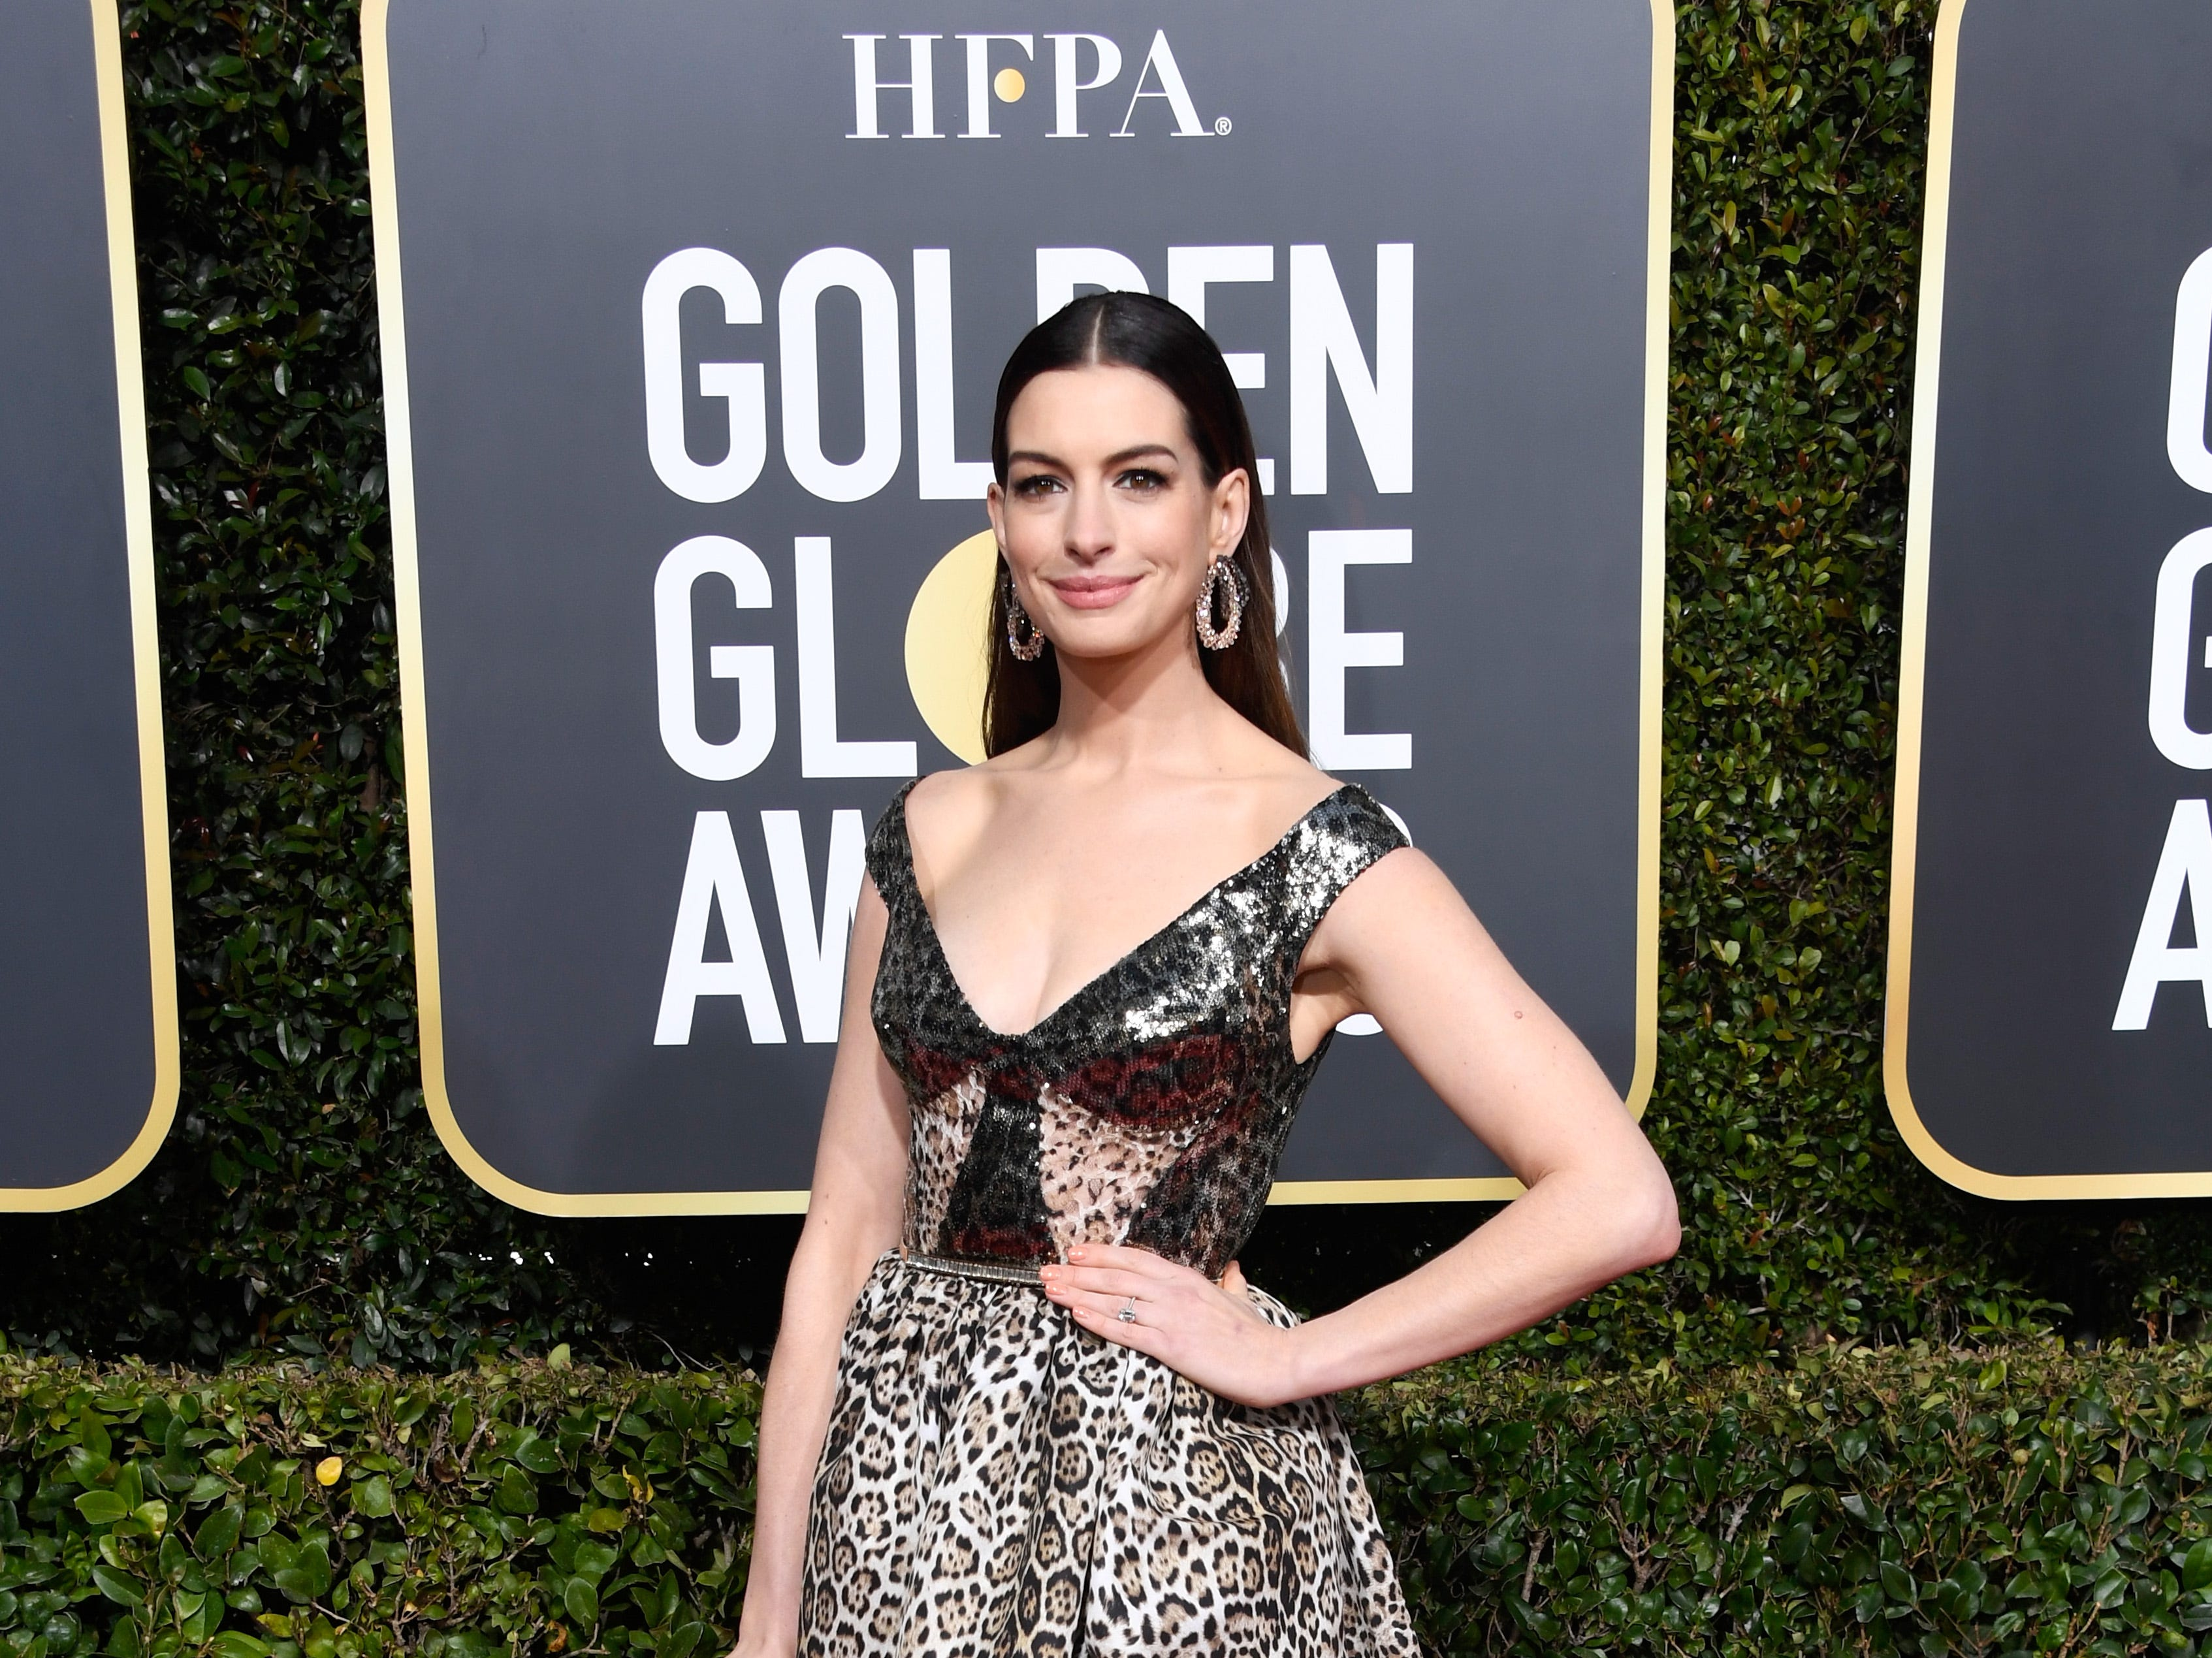 BEVERLY HILLS, CA - JANUARY 06:  Anne Hathaway attends the 76th Annual Golden Globe Awards at The Beverly Hilton Hotel on January 6, 2019 in Beverly Hills, California.  (Photo by Frazer Harrison/Getty Images) ORG XMIT: 775278352 ORIG FILE ID: 1078338126